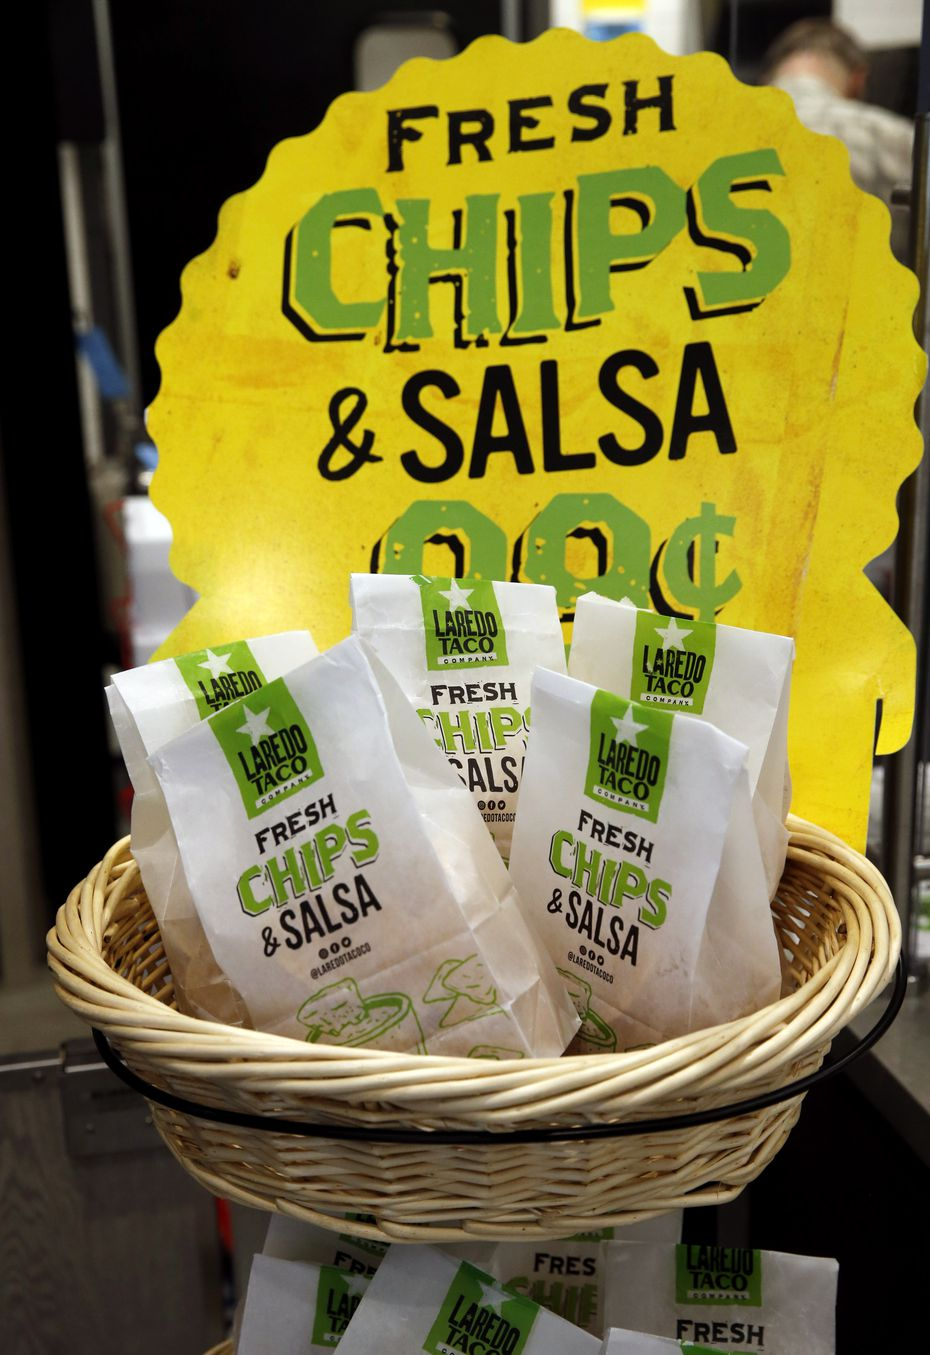 Fresh chips and salsa for sale at Laredo Taco company inside the 7-Eleven near the intersection of Audelia Road and Walnut Hill Lane on Wednesday, November 18, 2020 in Dallas. The new 7-Eleven store will have its grand opening on Thursday. (Vernon Bryant/The Dallas Morning News)